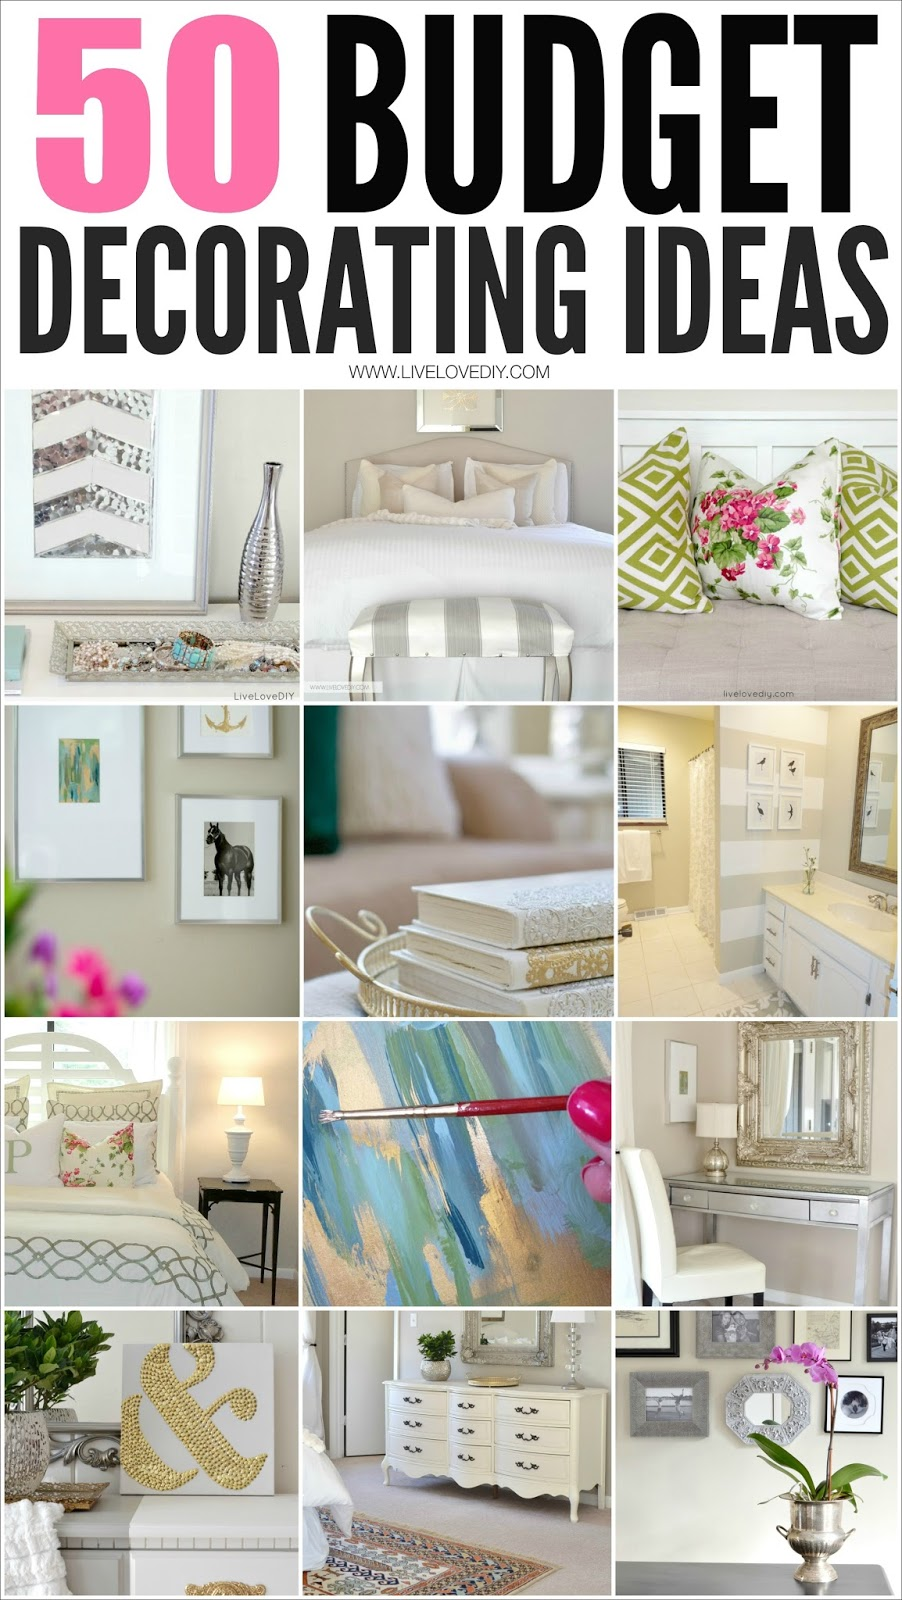 50 Amazing Budget Decorating Tips Everyone Should Know! I especially love #4!